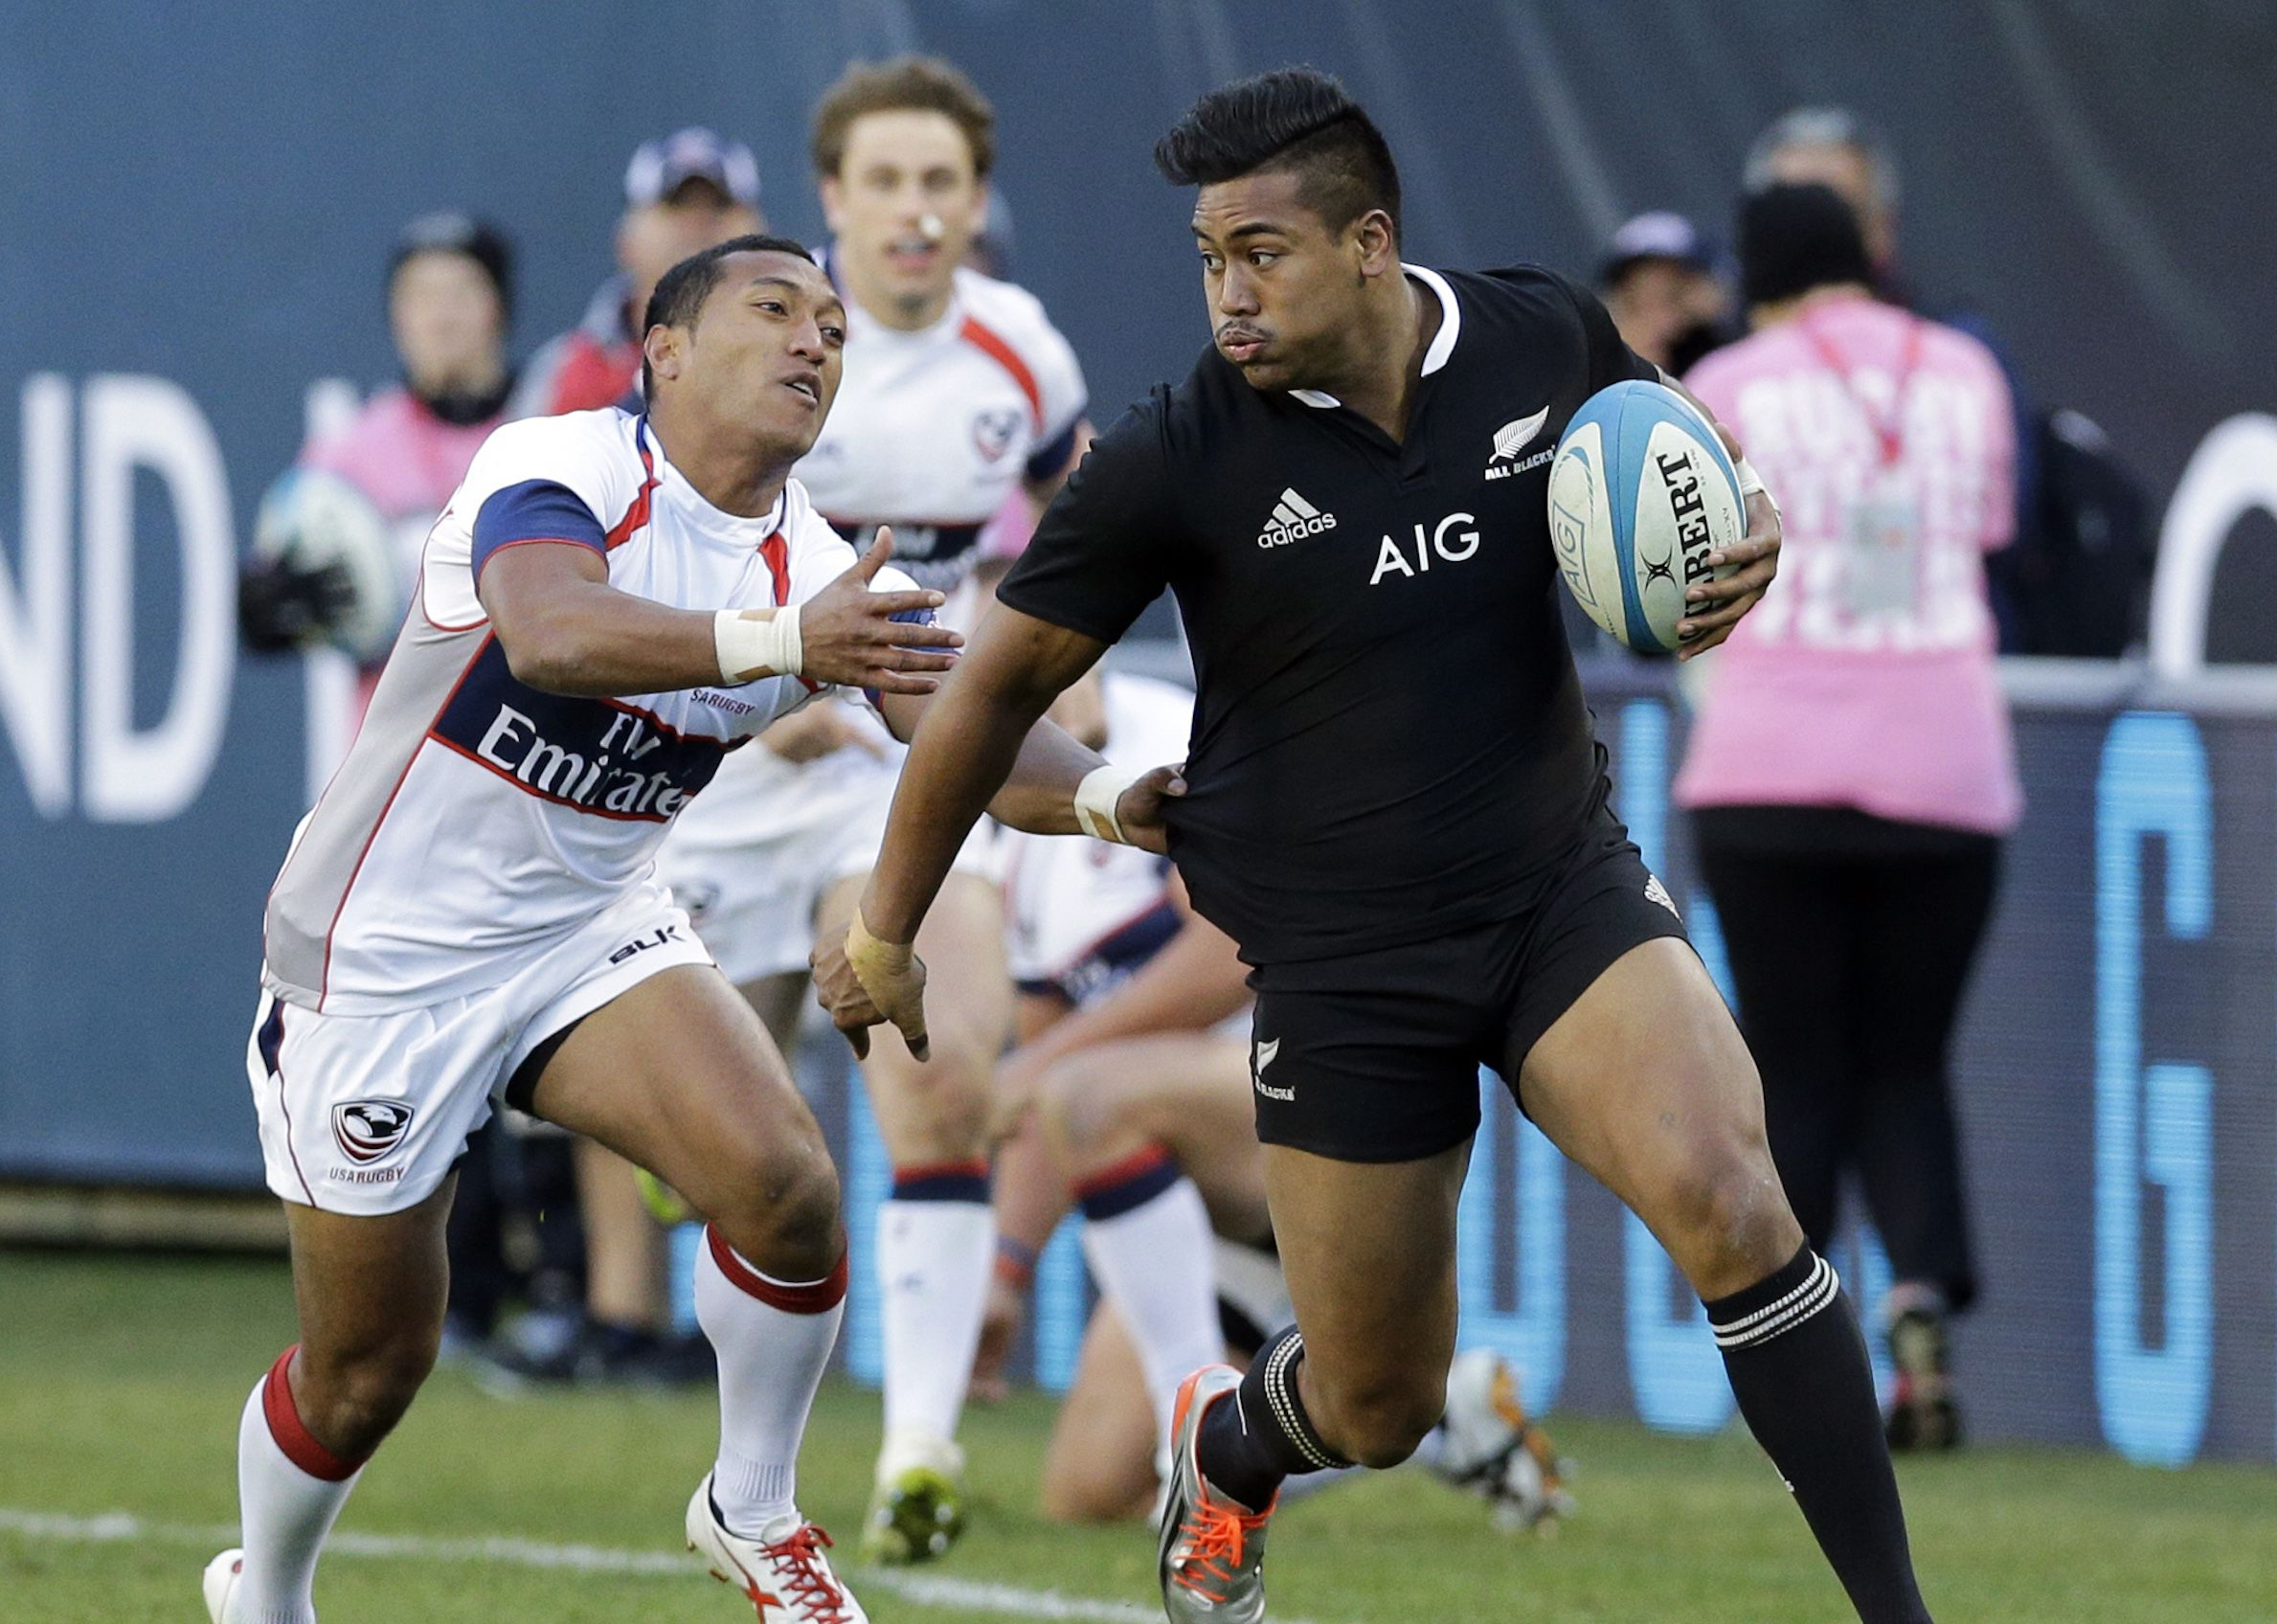 The New Zealand All Blacks outside back Julian Savea, right, runs with the ball as he looks to a pass against the USA Eagles' Shalom Suniula during the second half of the International Test Rugby Match in Chicago, Saturday, Nov. 1, 2014. New Zealand All Blacks won 74-6. (AP Photo/Nam Y. Huh)